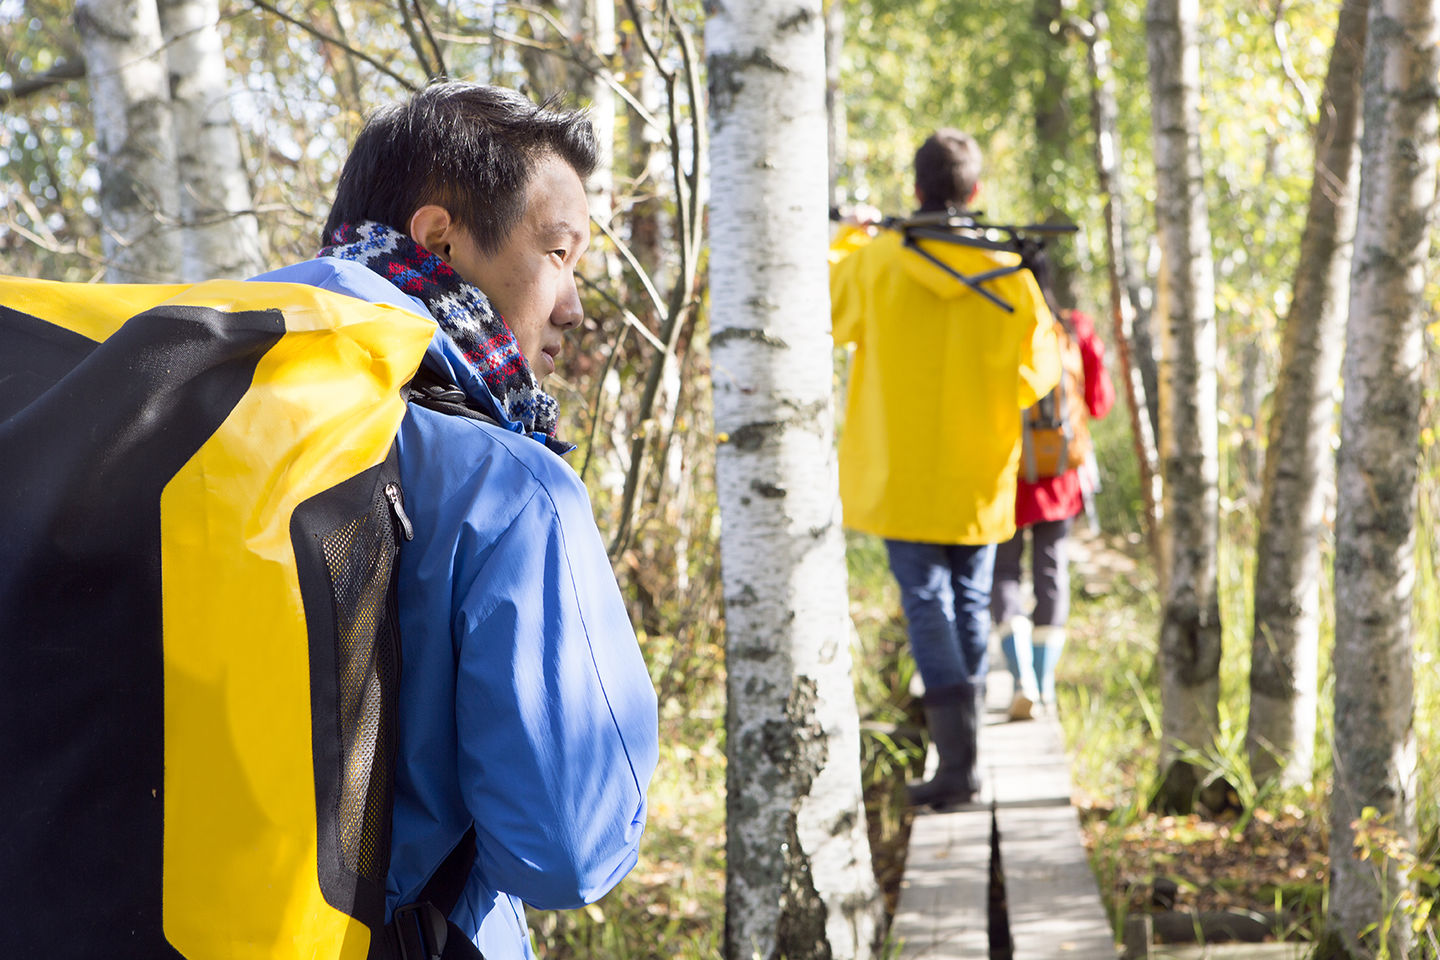 Aalto University - Walking in the woods